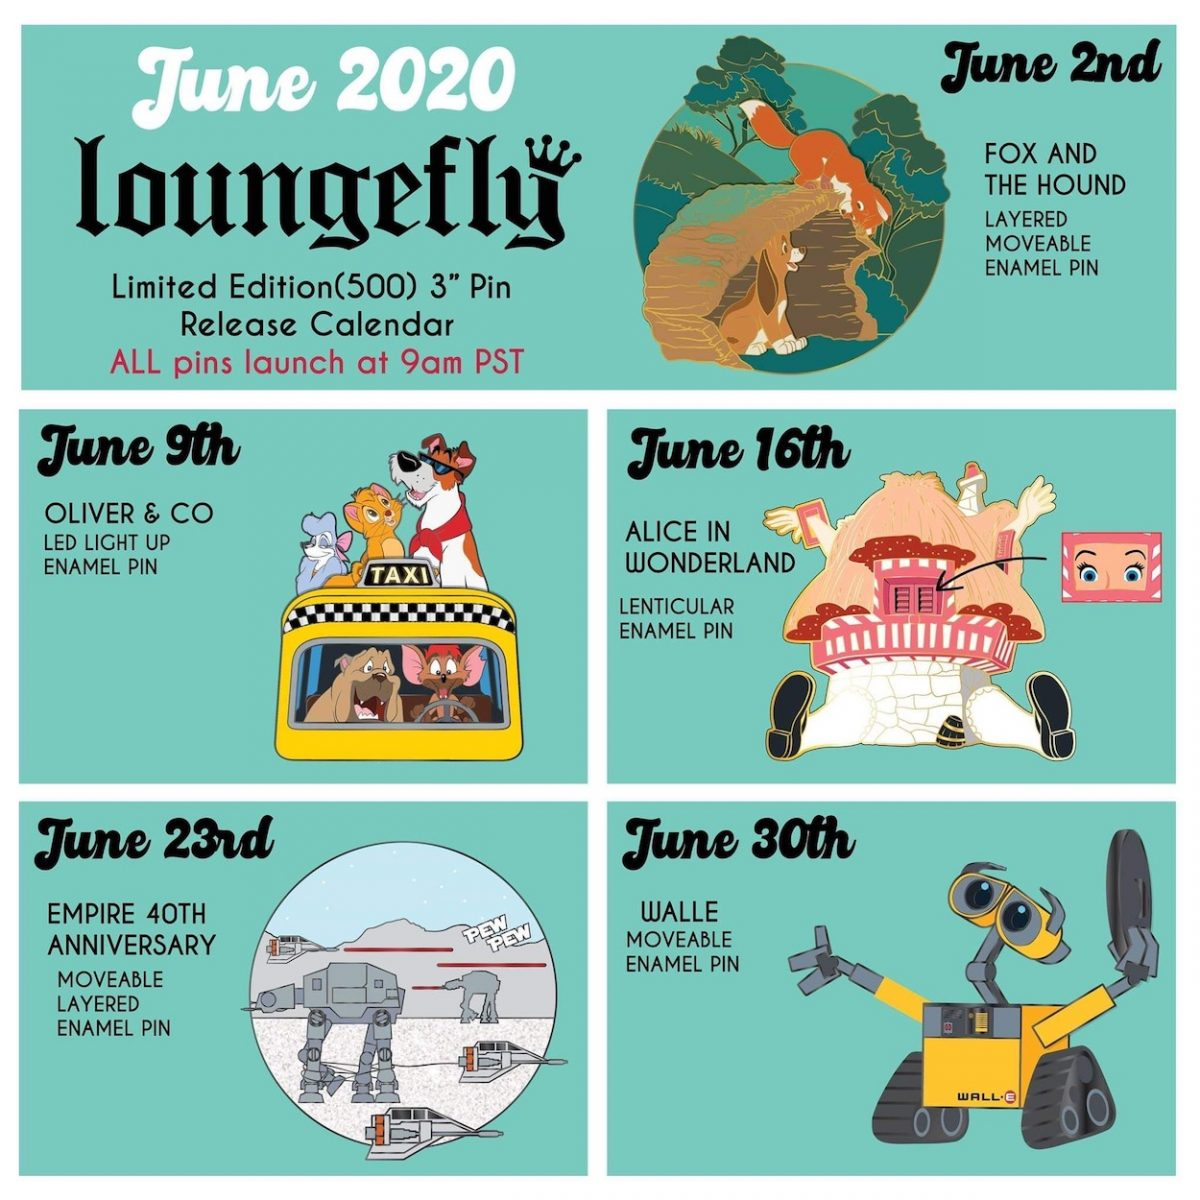 June 2020 Loungefly Disney Pin Preview